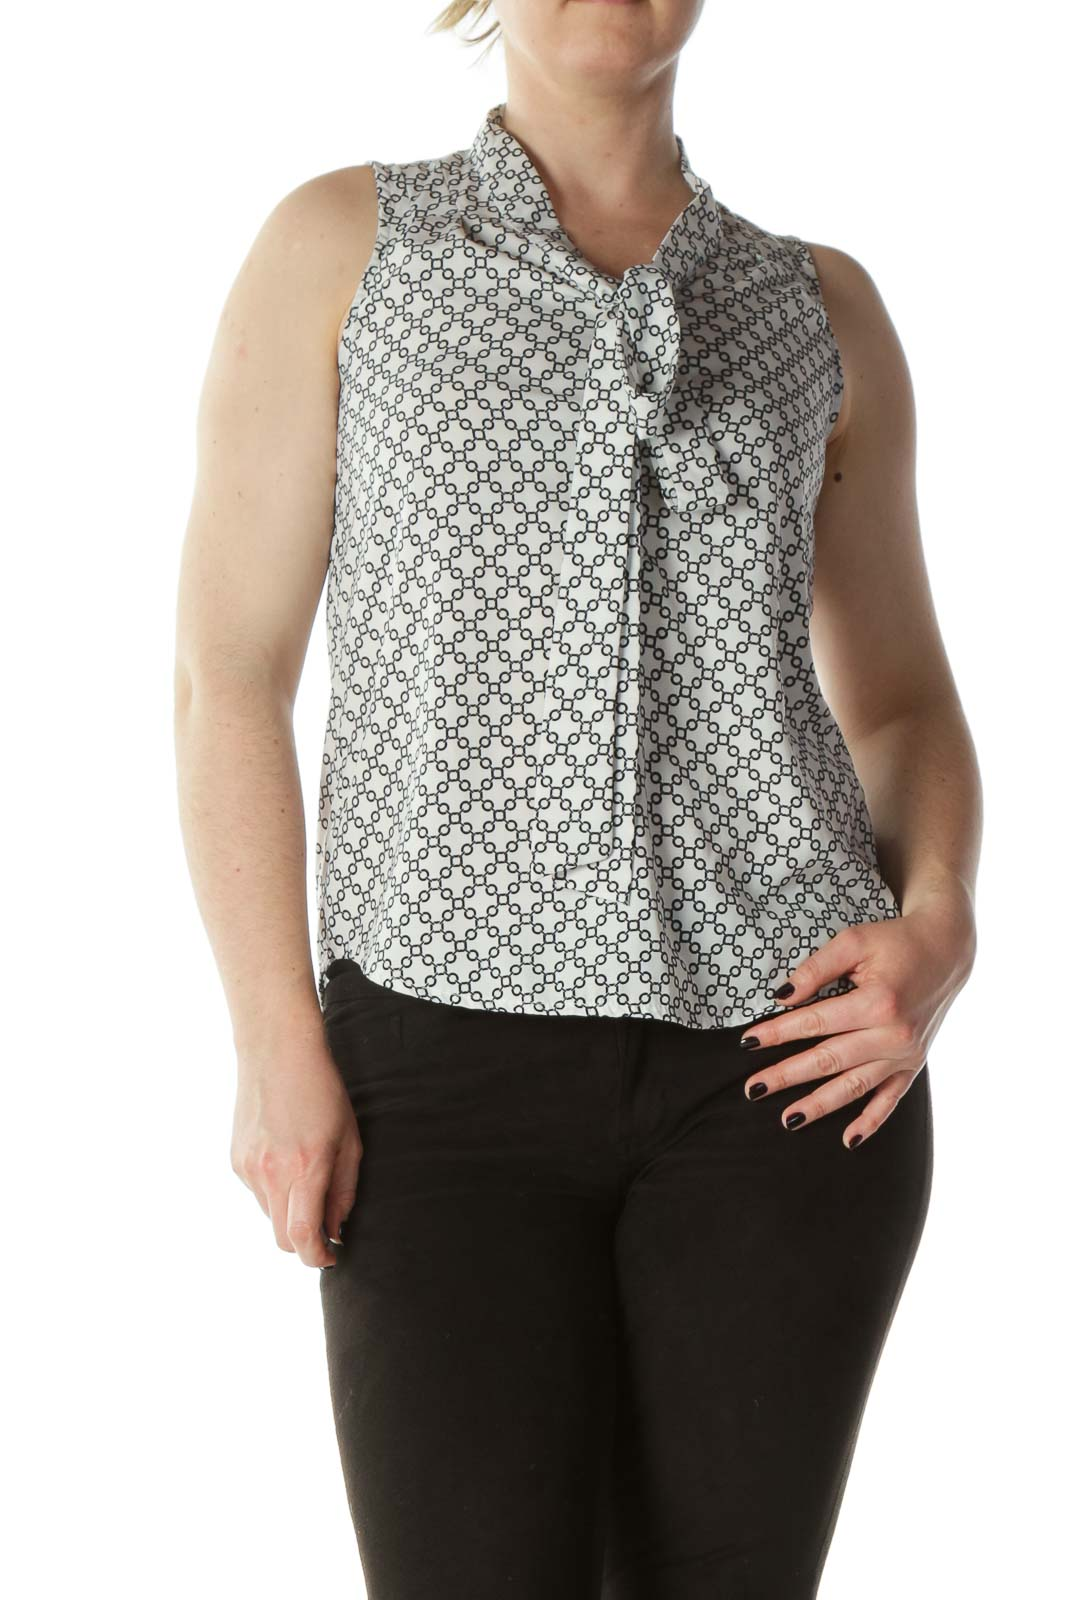 White and Black Chain Patterned Sleeveless Blouse with Neck-Tie